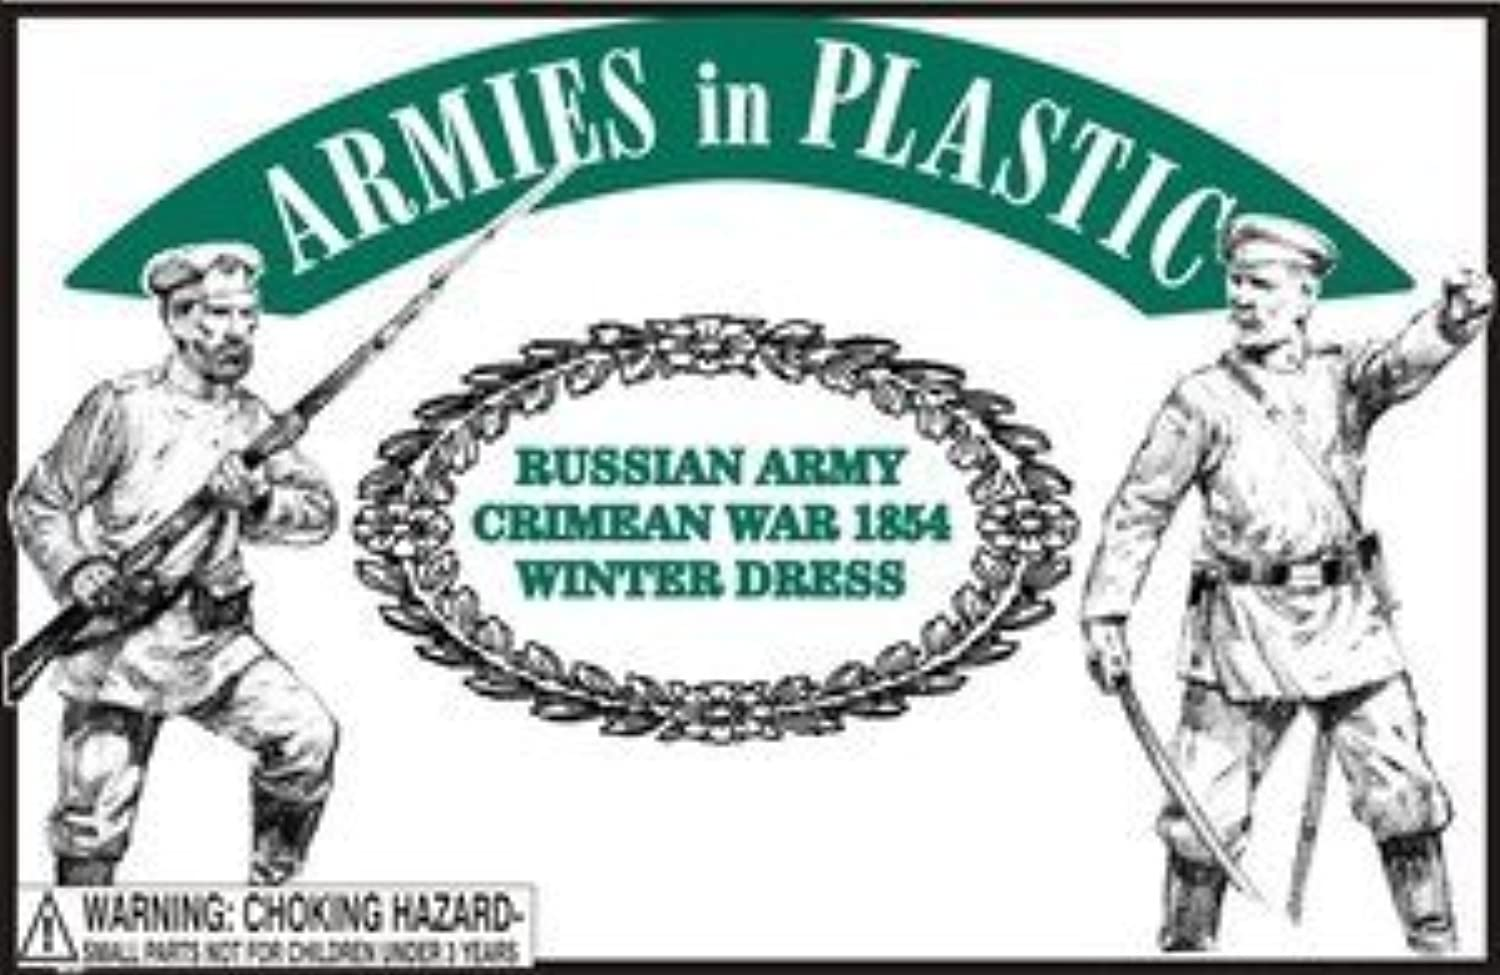 Crimean War 1854 Russian Army Winter Dress (20) 1 32 Armies in Plastic by Armies in Plastic